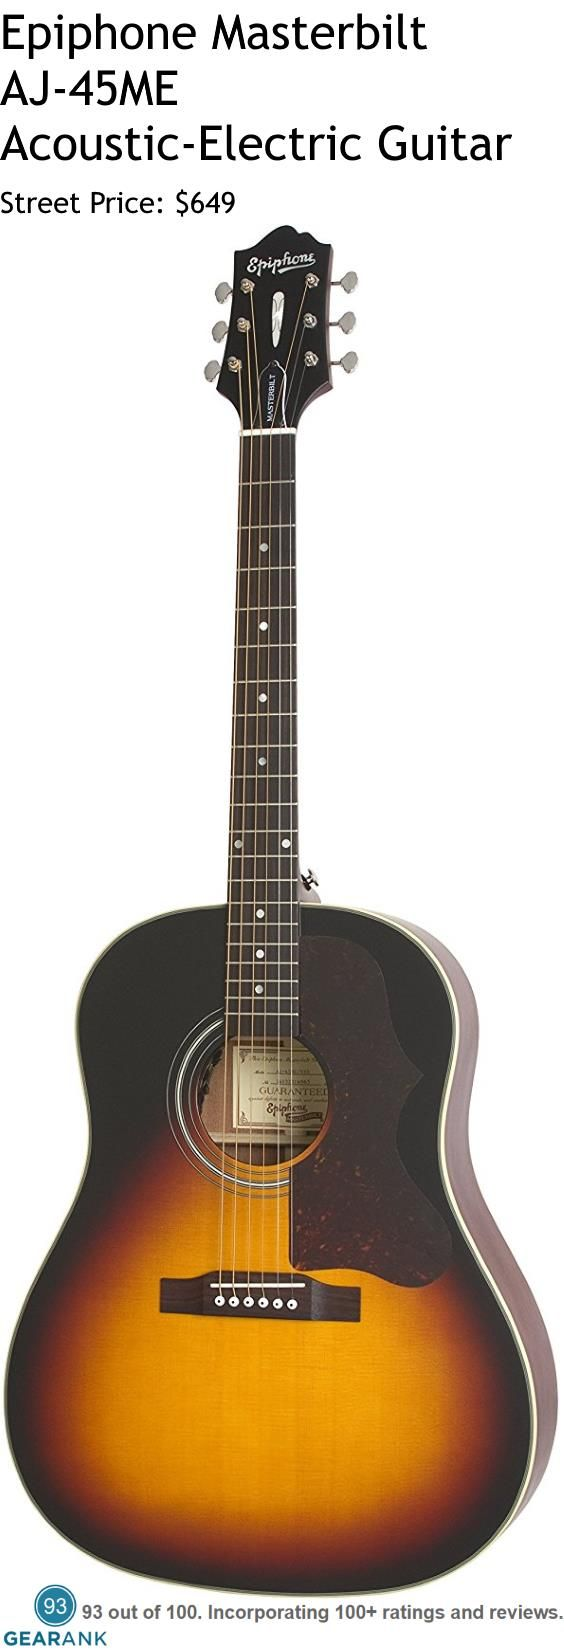 "Epiphone Masterbilt AJ-45ME Acoustic-Electric Guitar.  Epiphone's first Ltd. Ed. reissue of the ""The Workhorse"" J-45 earned it a ""Mark of Excellence Award"" from Guitar One magazine and now the new Masterbilt 2015 AJ-45ME Acoustic/Electric brings two legends together for the first time!  For a Detailed Guide to The Best Acoustic Guitars see https://www.gearank.com/guides/acoustic-guitars"